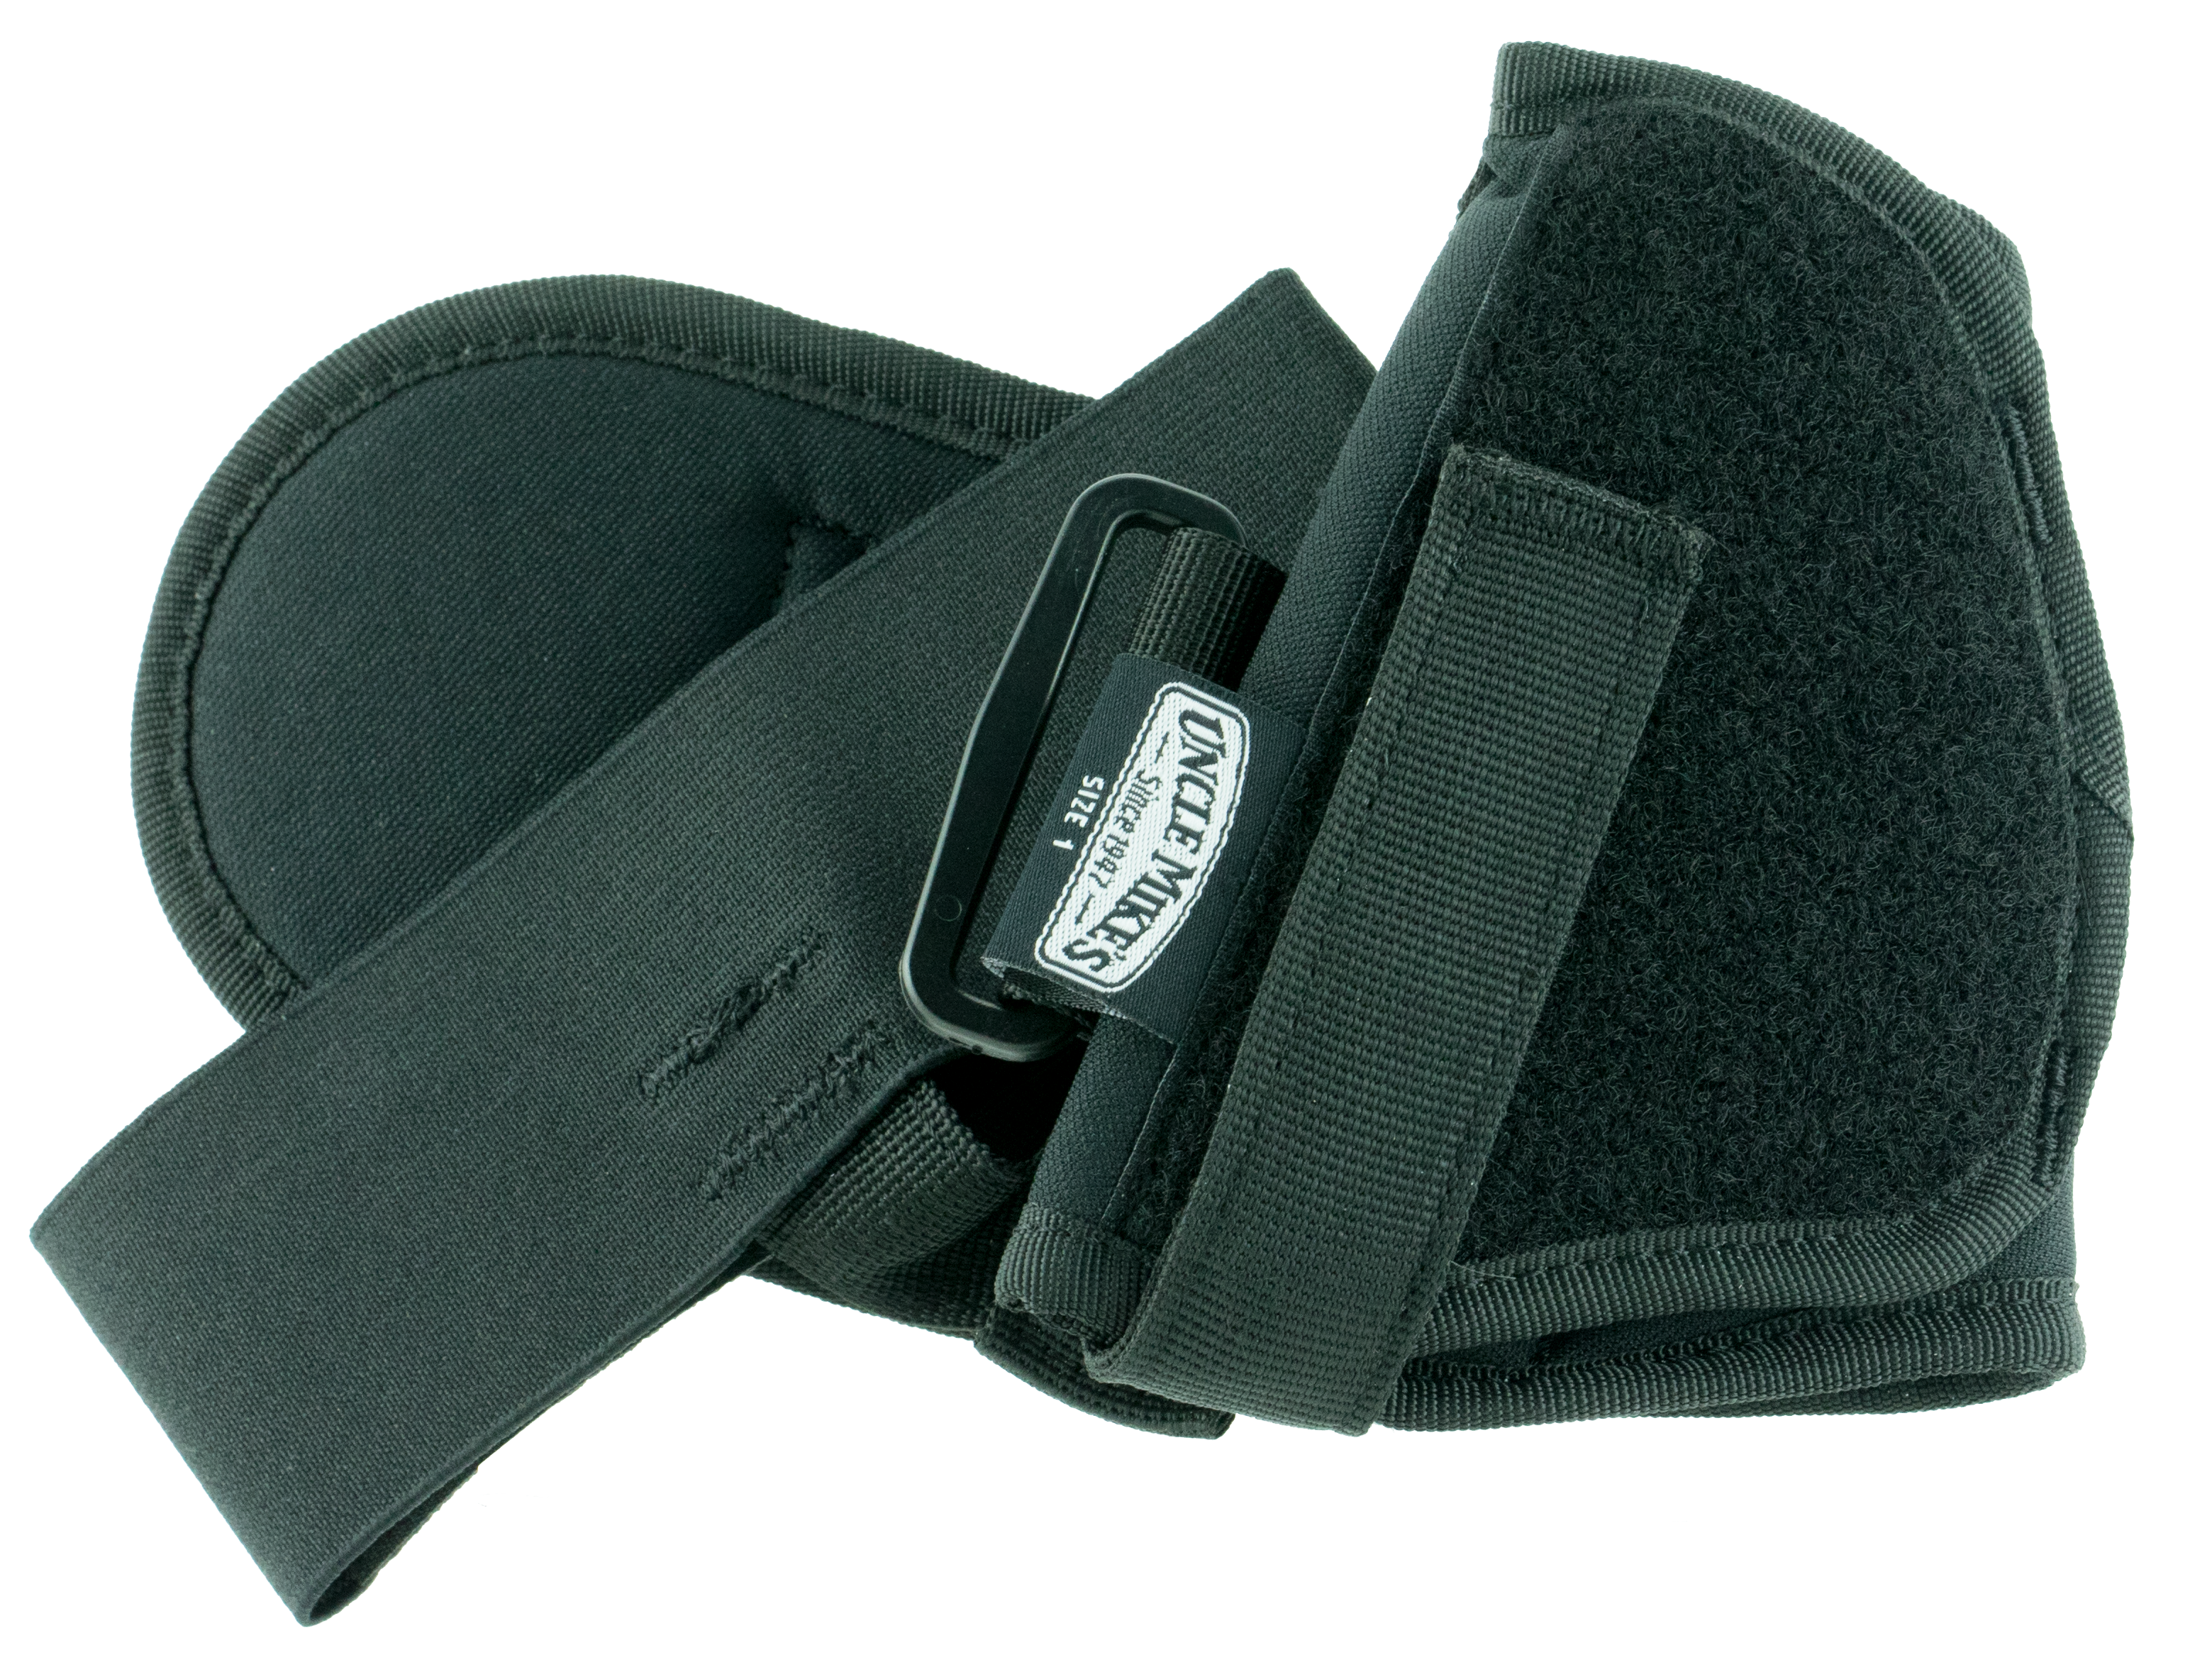 Uncle Mikes 8821 Ankle Holster 3-4